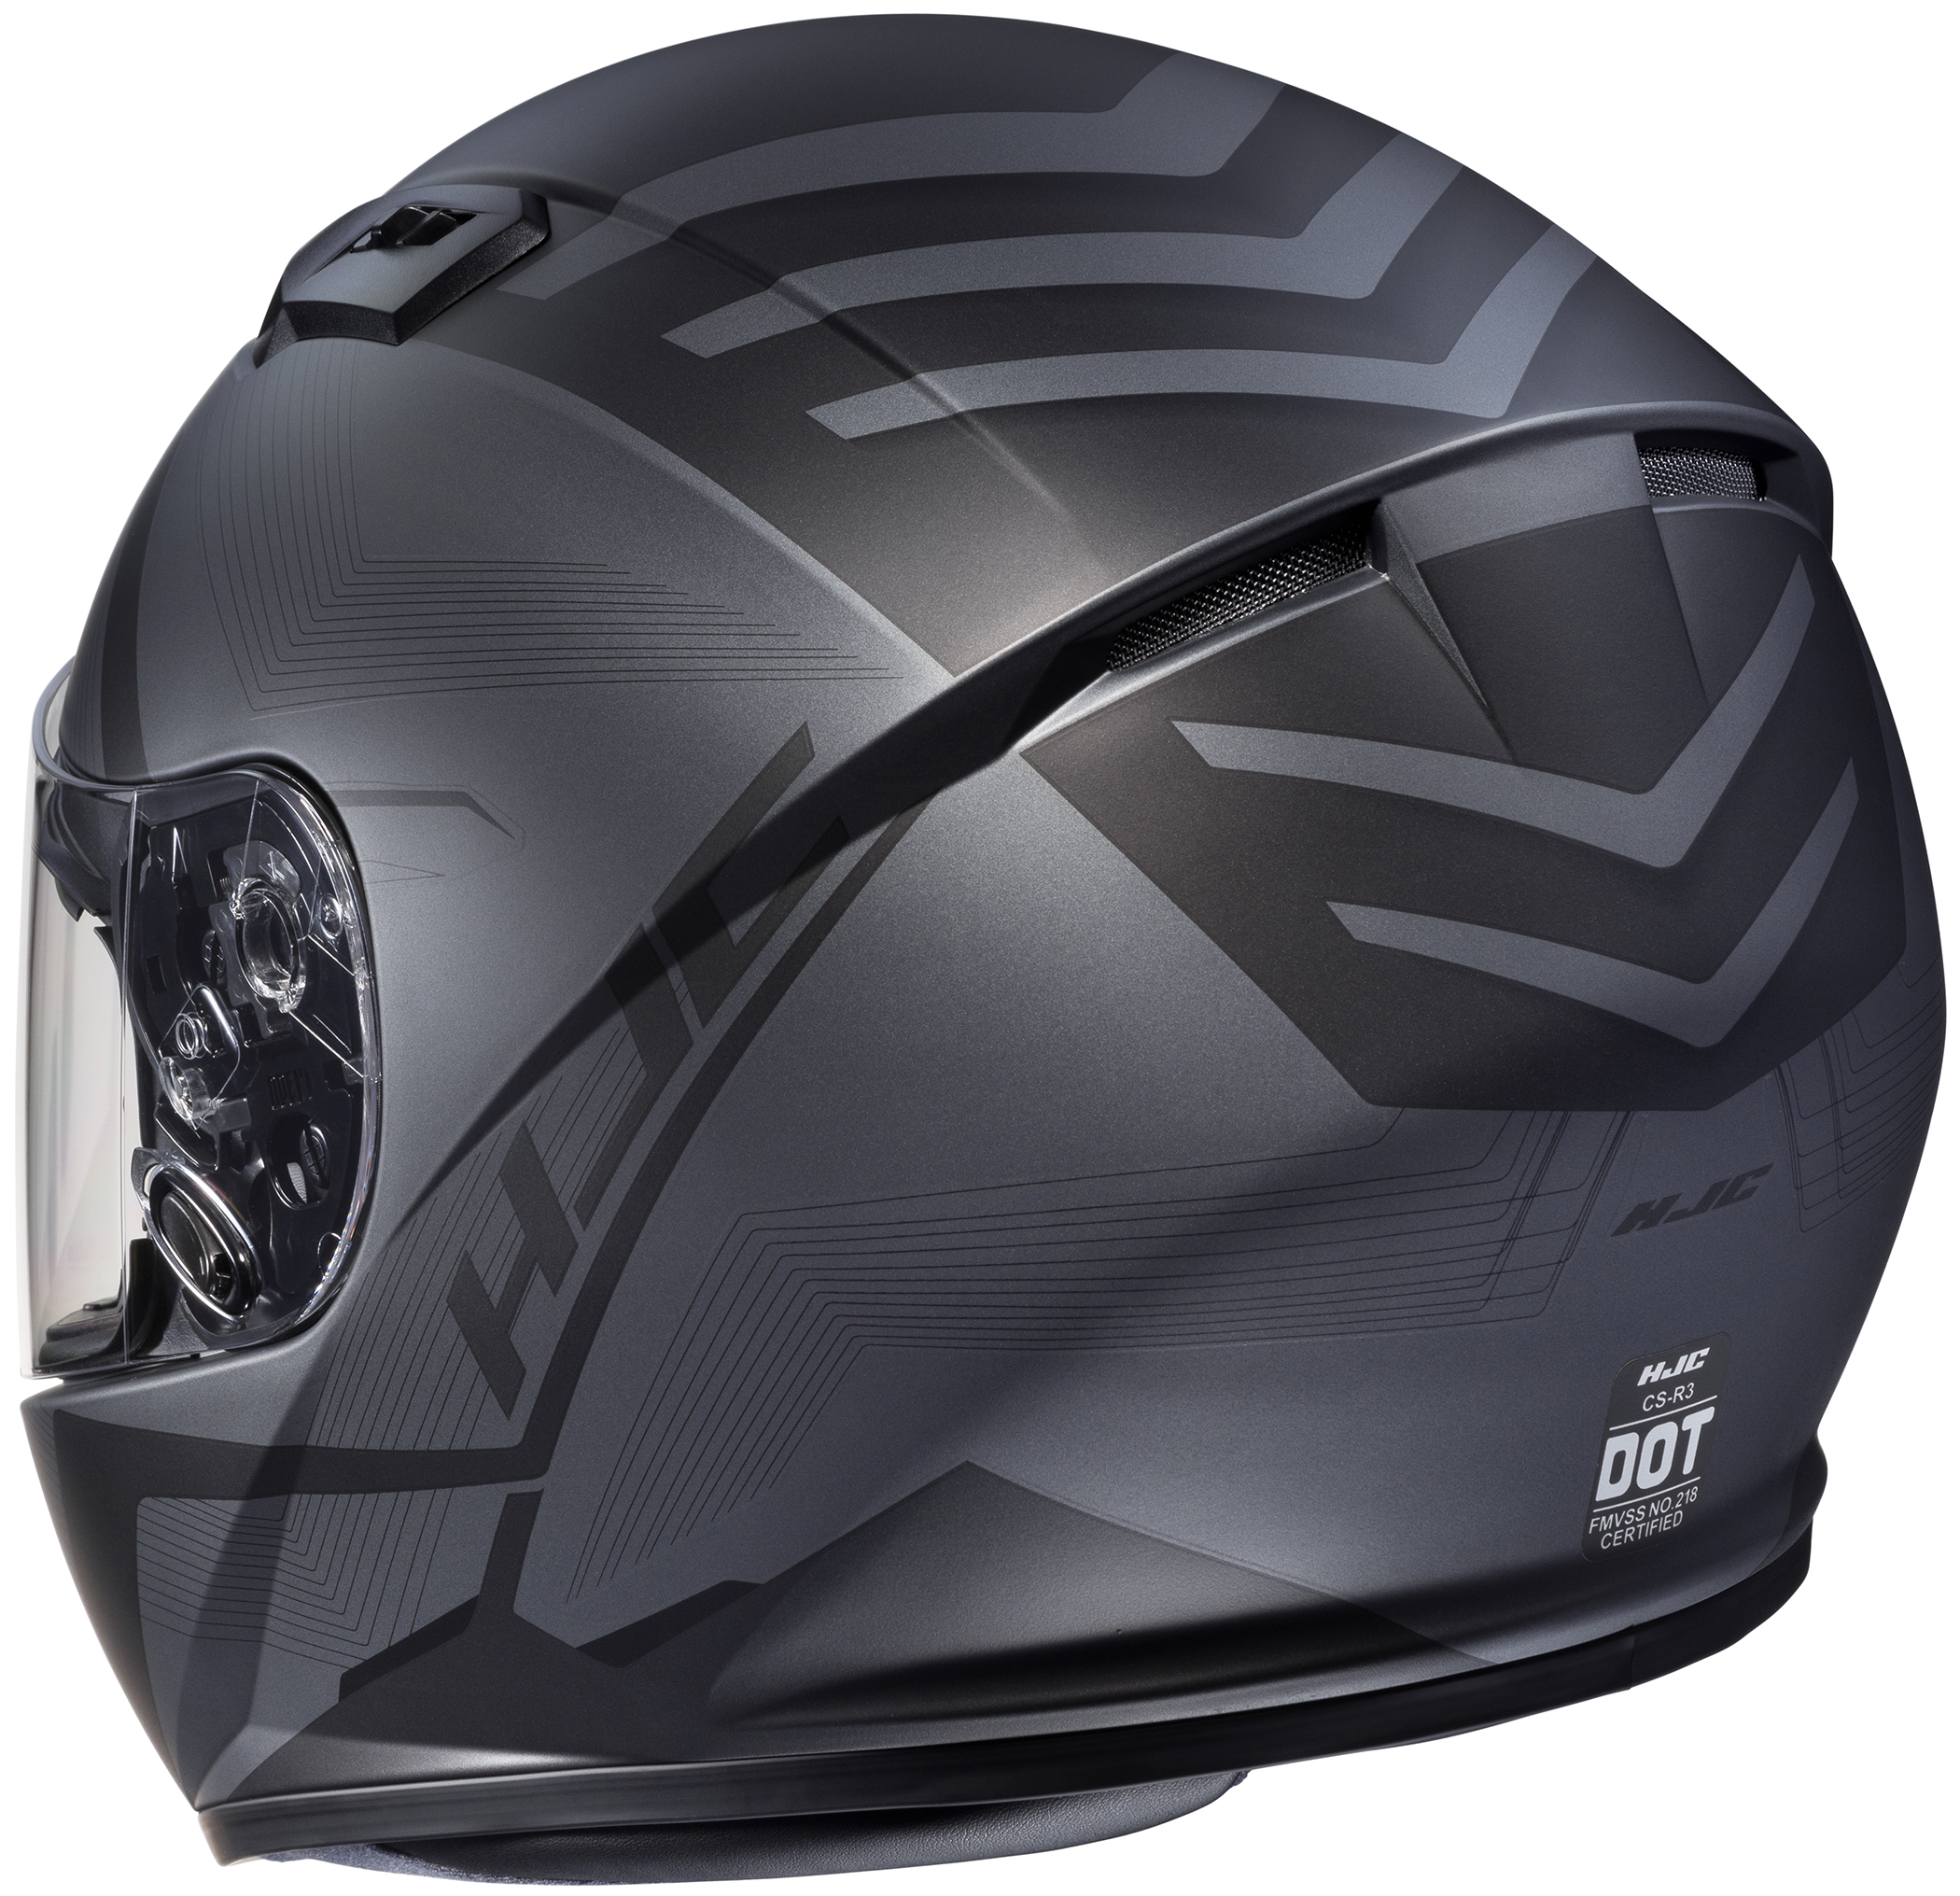 HJC Breath Deflector FS-15 On-Road Motorcycle Helmet Accessories Size One Size Fits Most